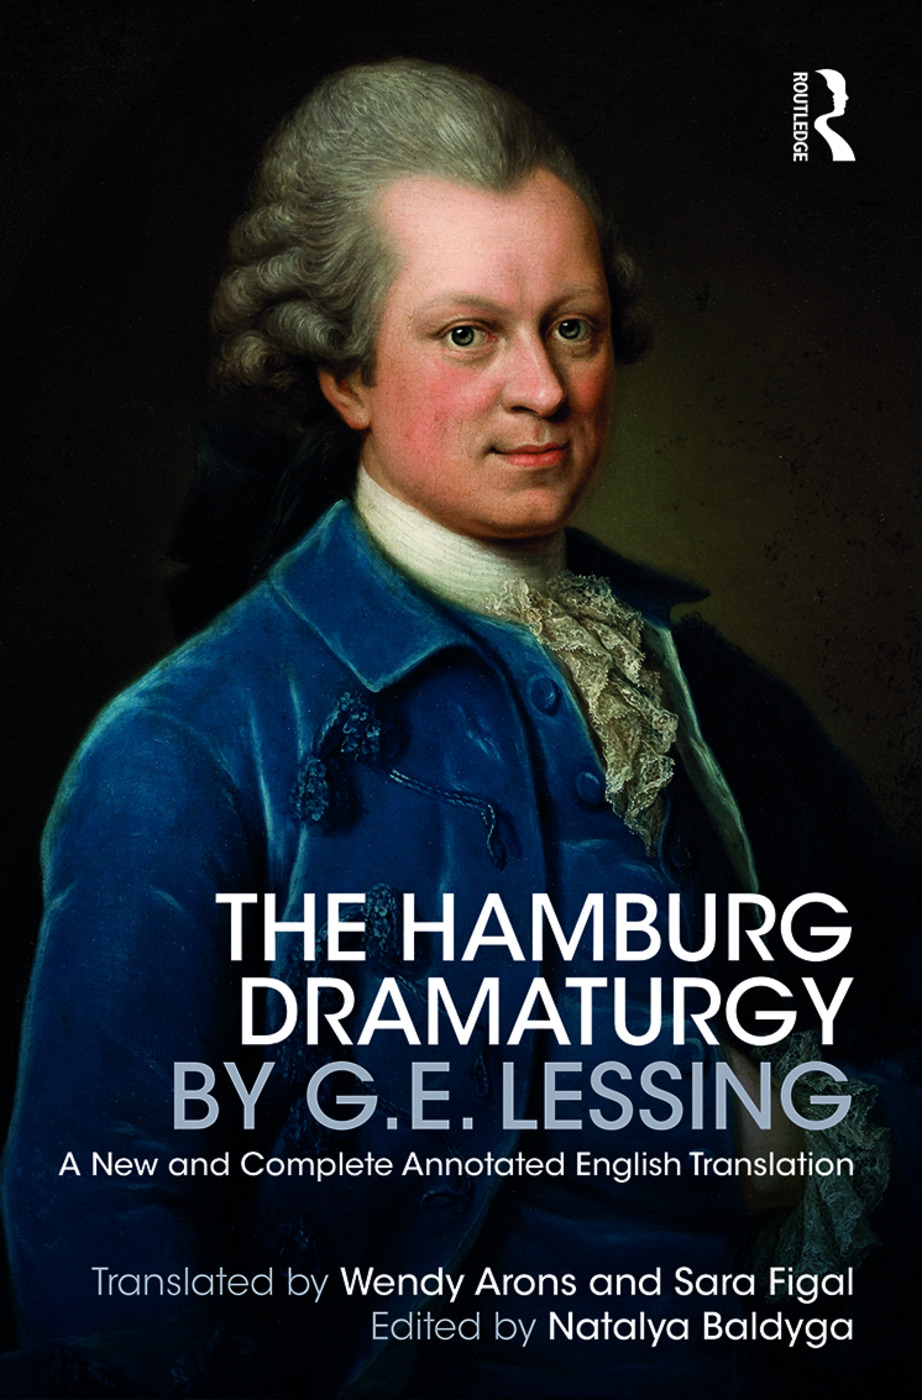 The Hamburg Dramaturgy by G.E. Lessing: A New and Complete Annotated English Translation book cover